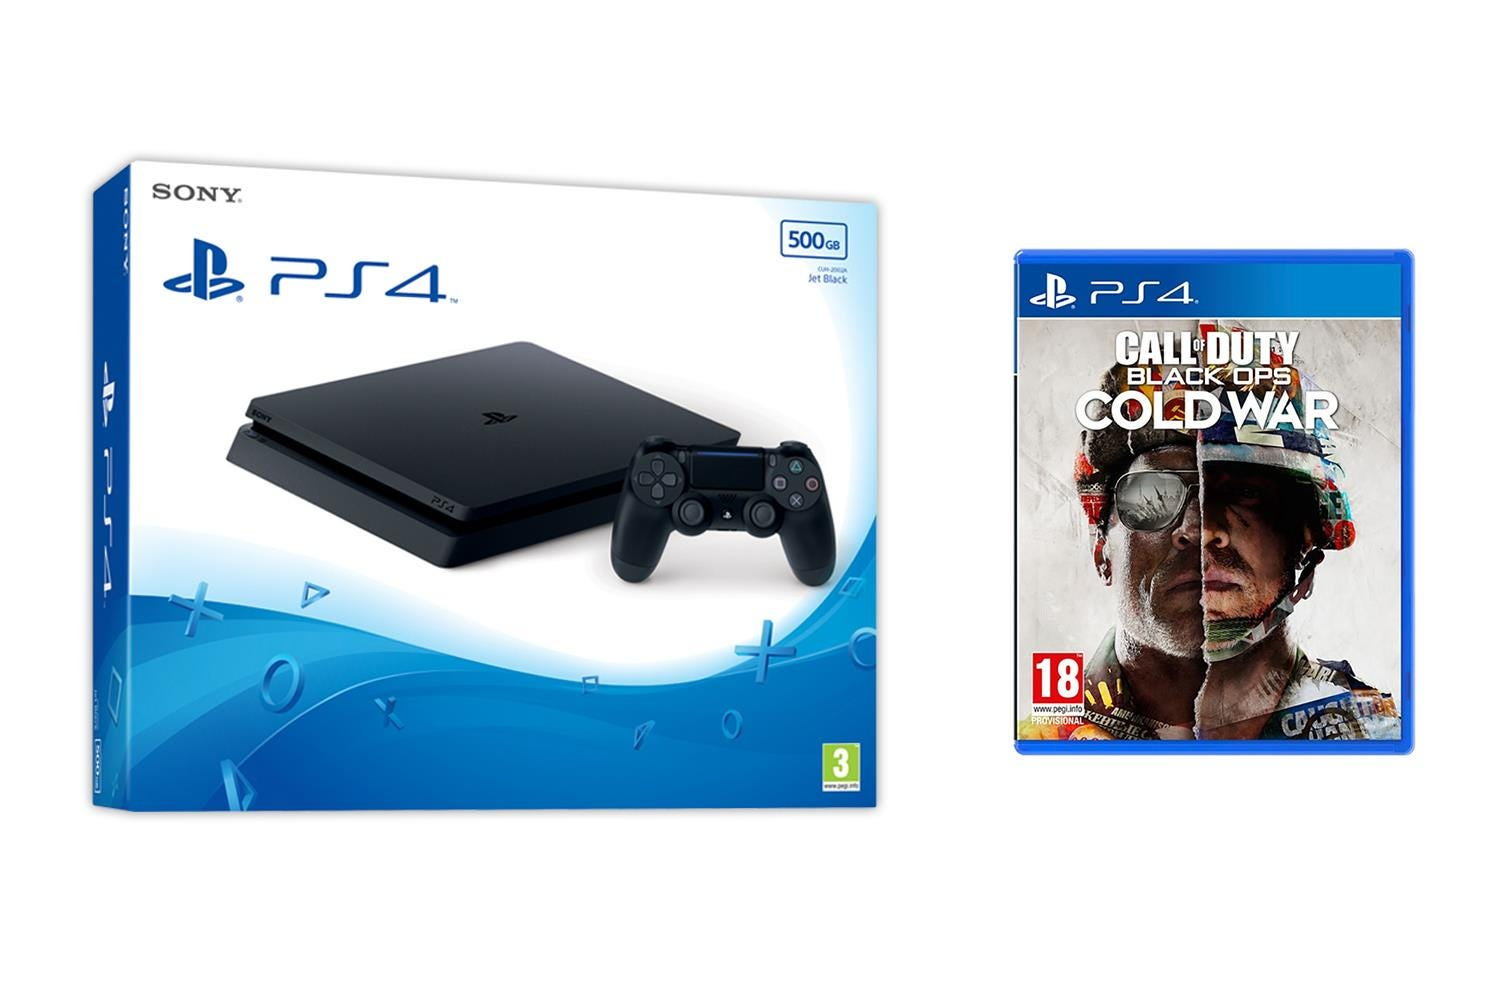 Sony PlayStation 4 500GB Jet Black Console with Call of Duty: Black Ops Cold War